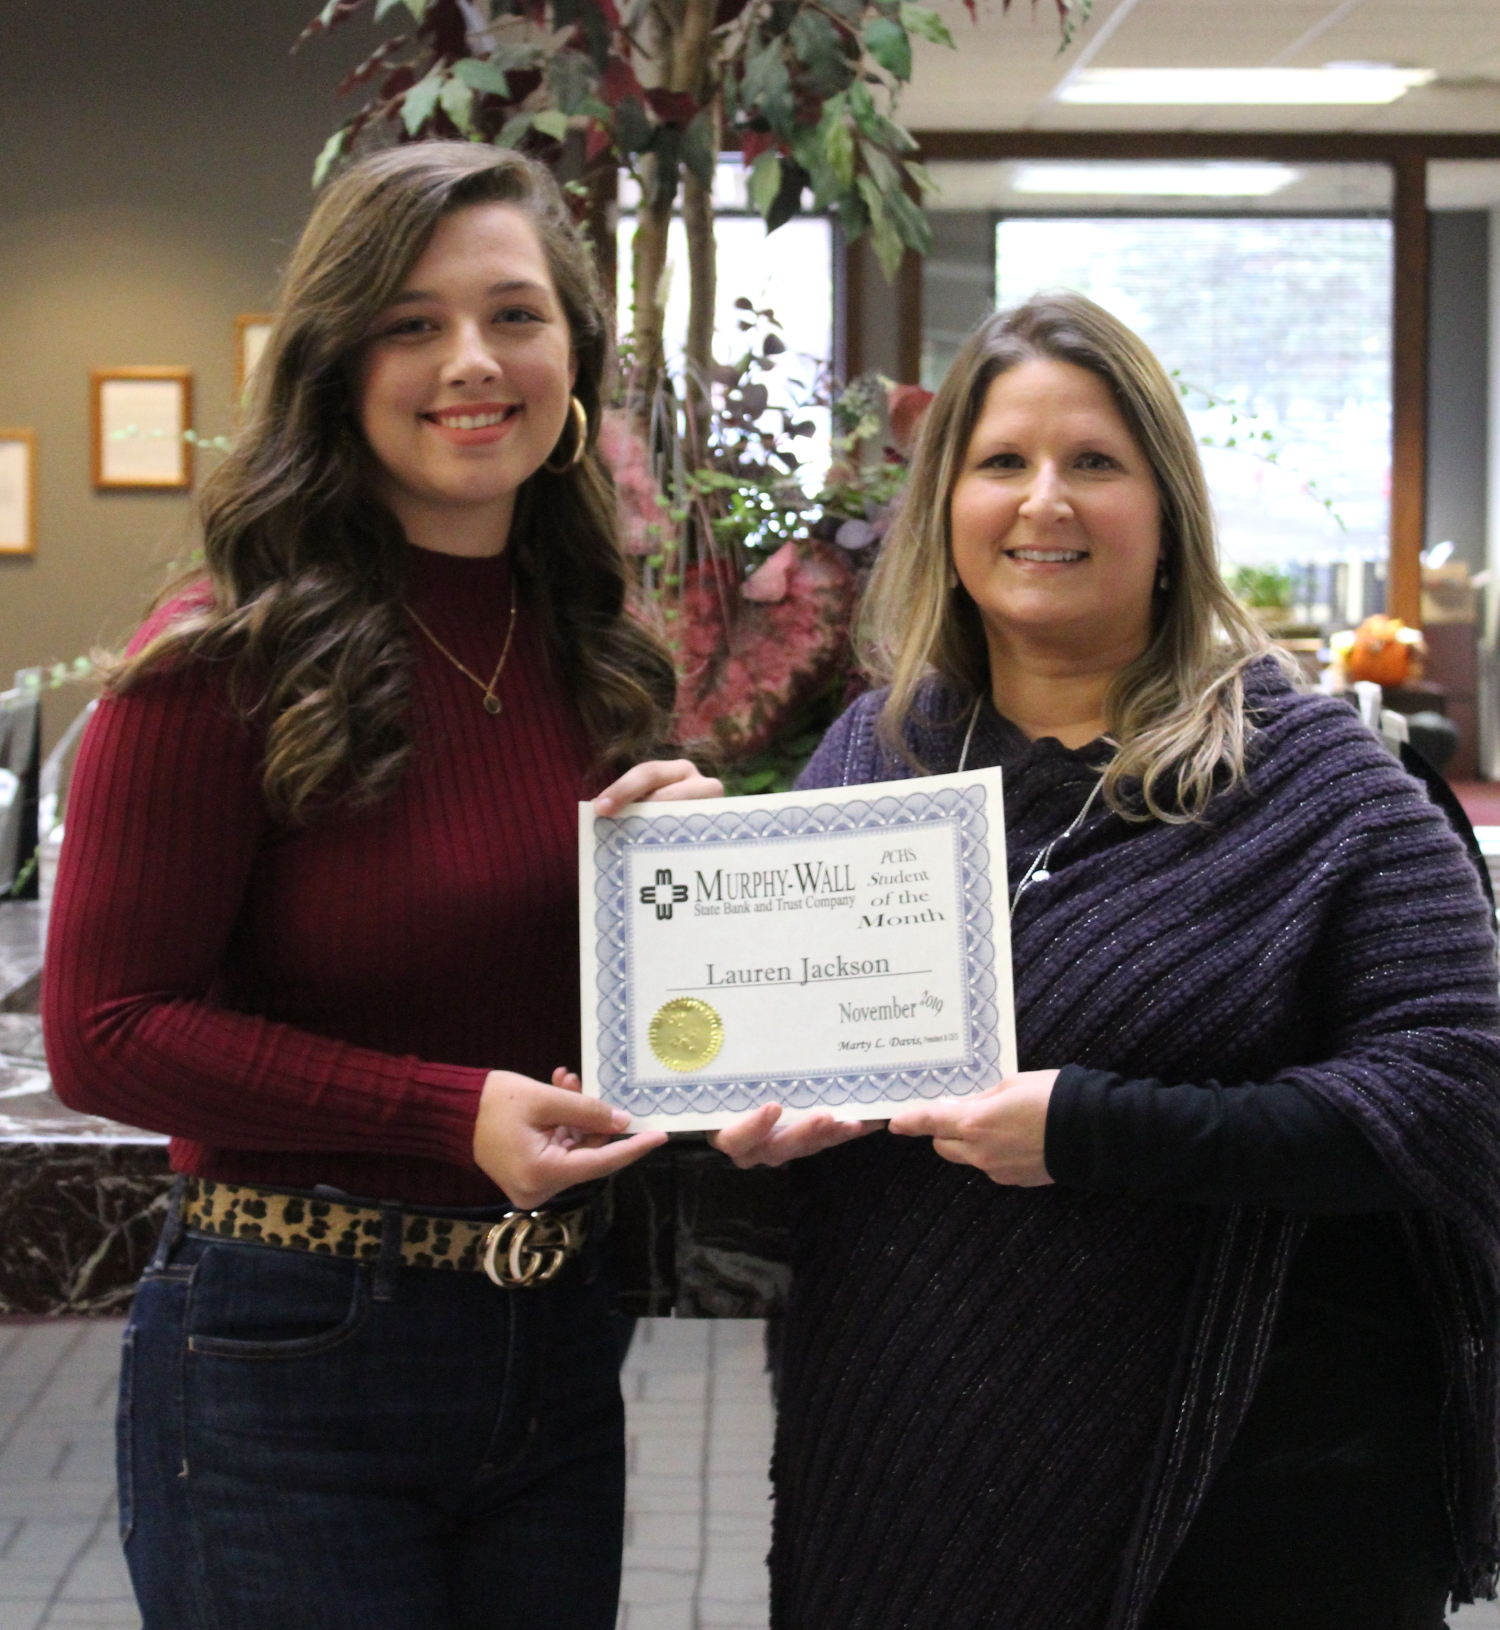 Murphy-Wall State Bank AVP Kathy Kellerman give the 2019 November Student of the Month Award to Lauren Jackson, PCHS Student